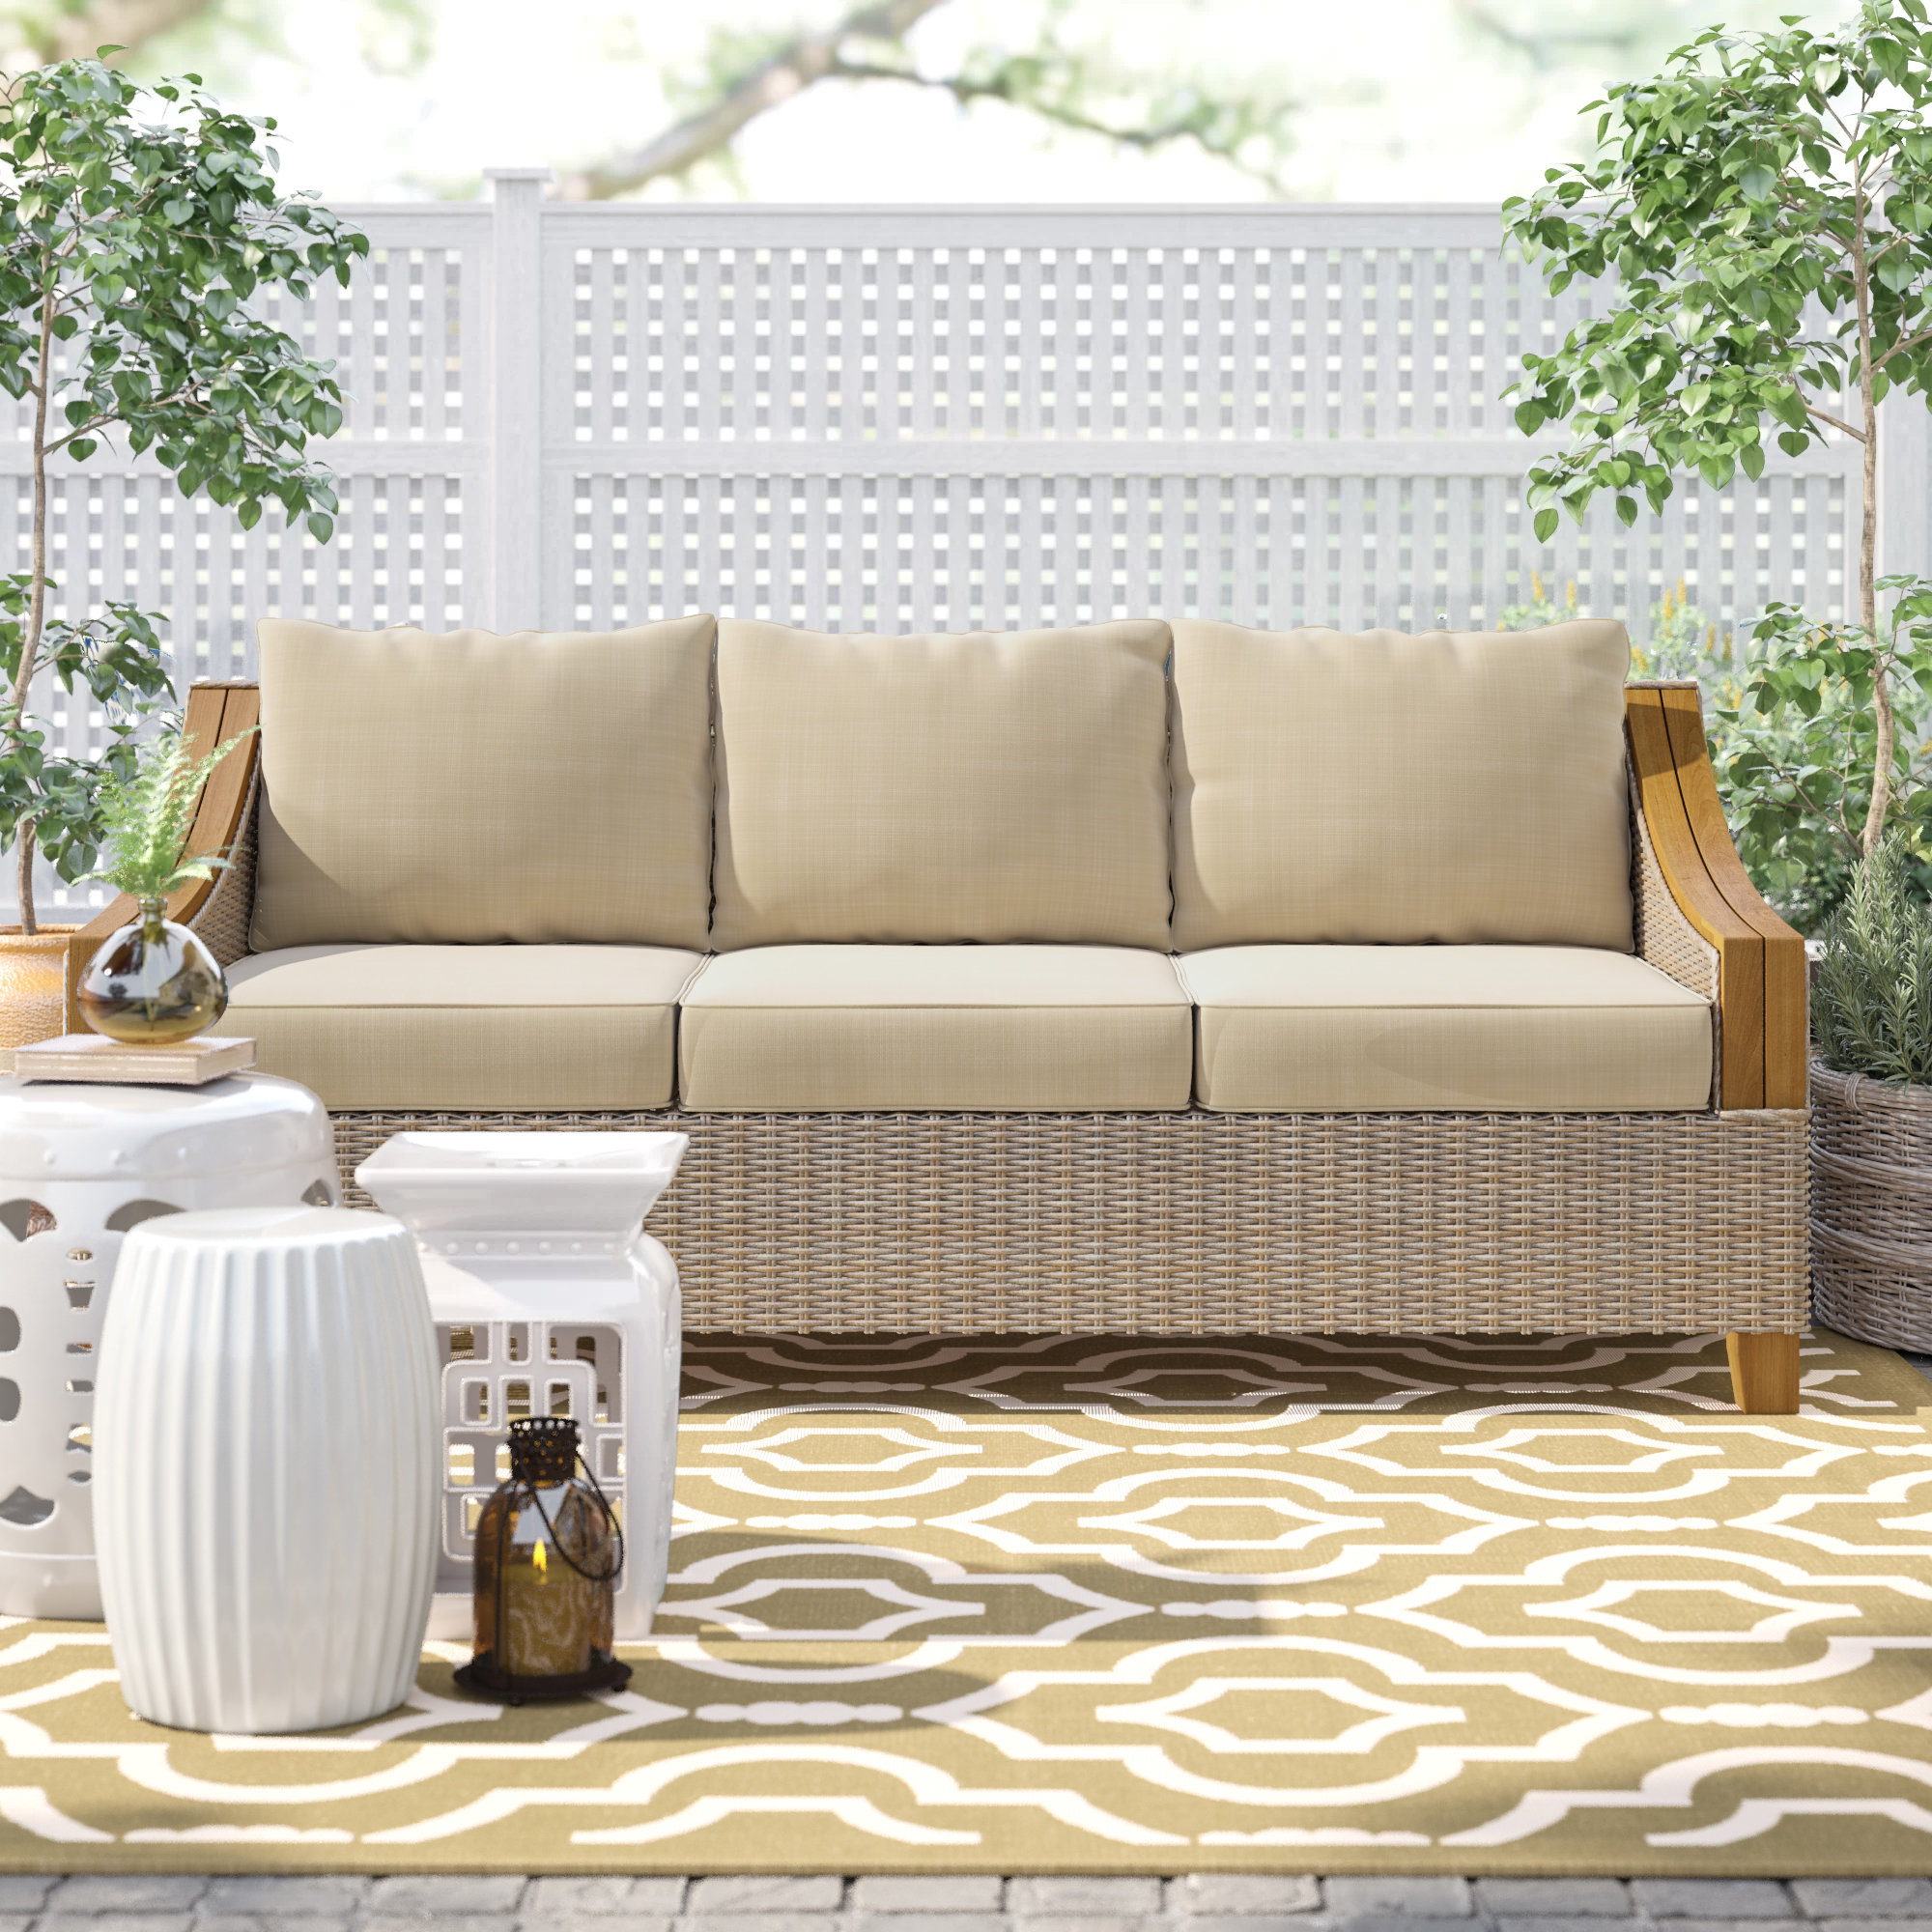 Favorite Kincaid Teak Patio Sofa With Sunbrella Cushions Regarding Lakeland Teak Patio Sofas With Cushions (View 18 of 20)